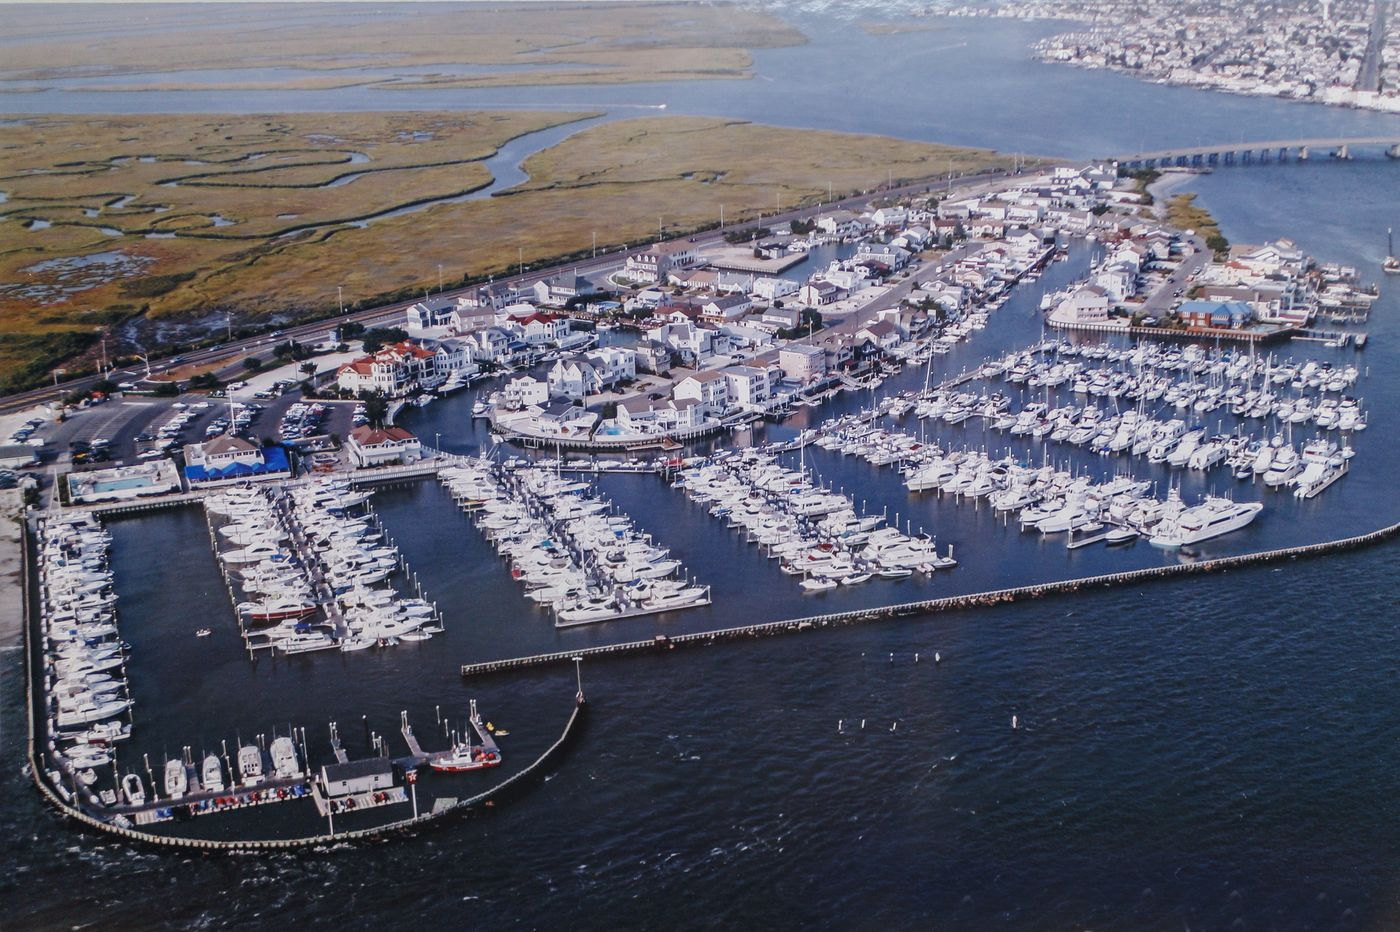 Seaview Harbor cannot become part of Longport, judge rules